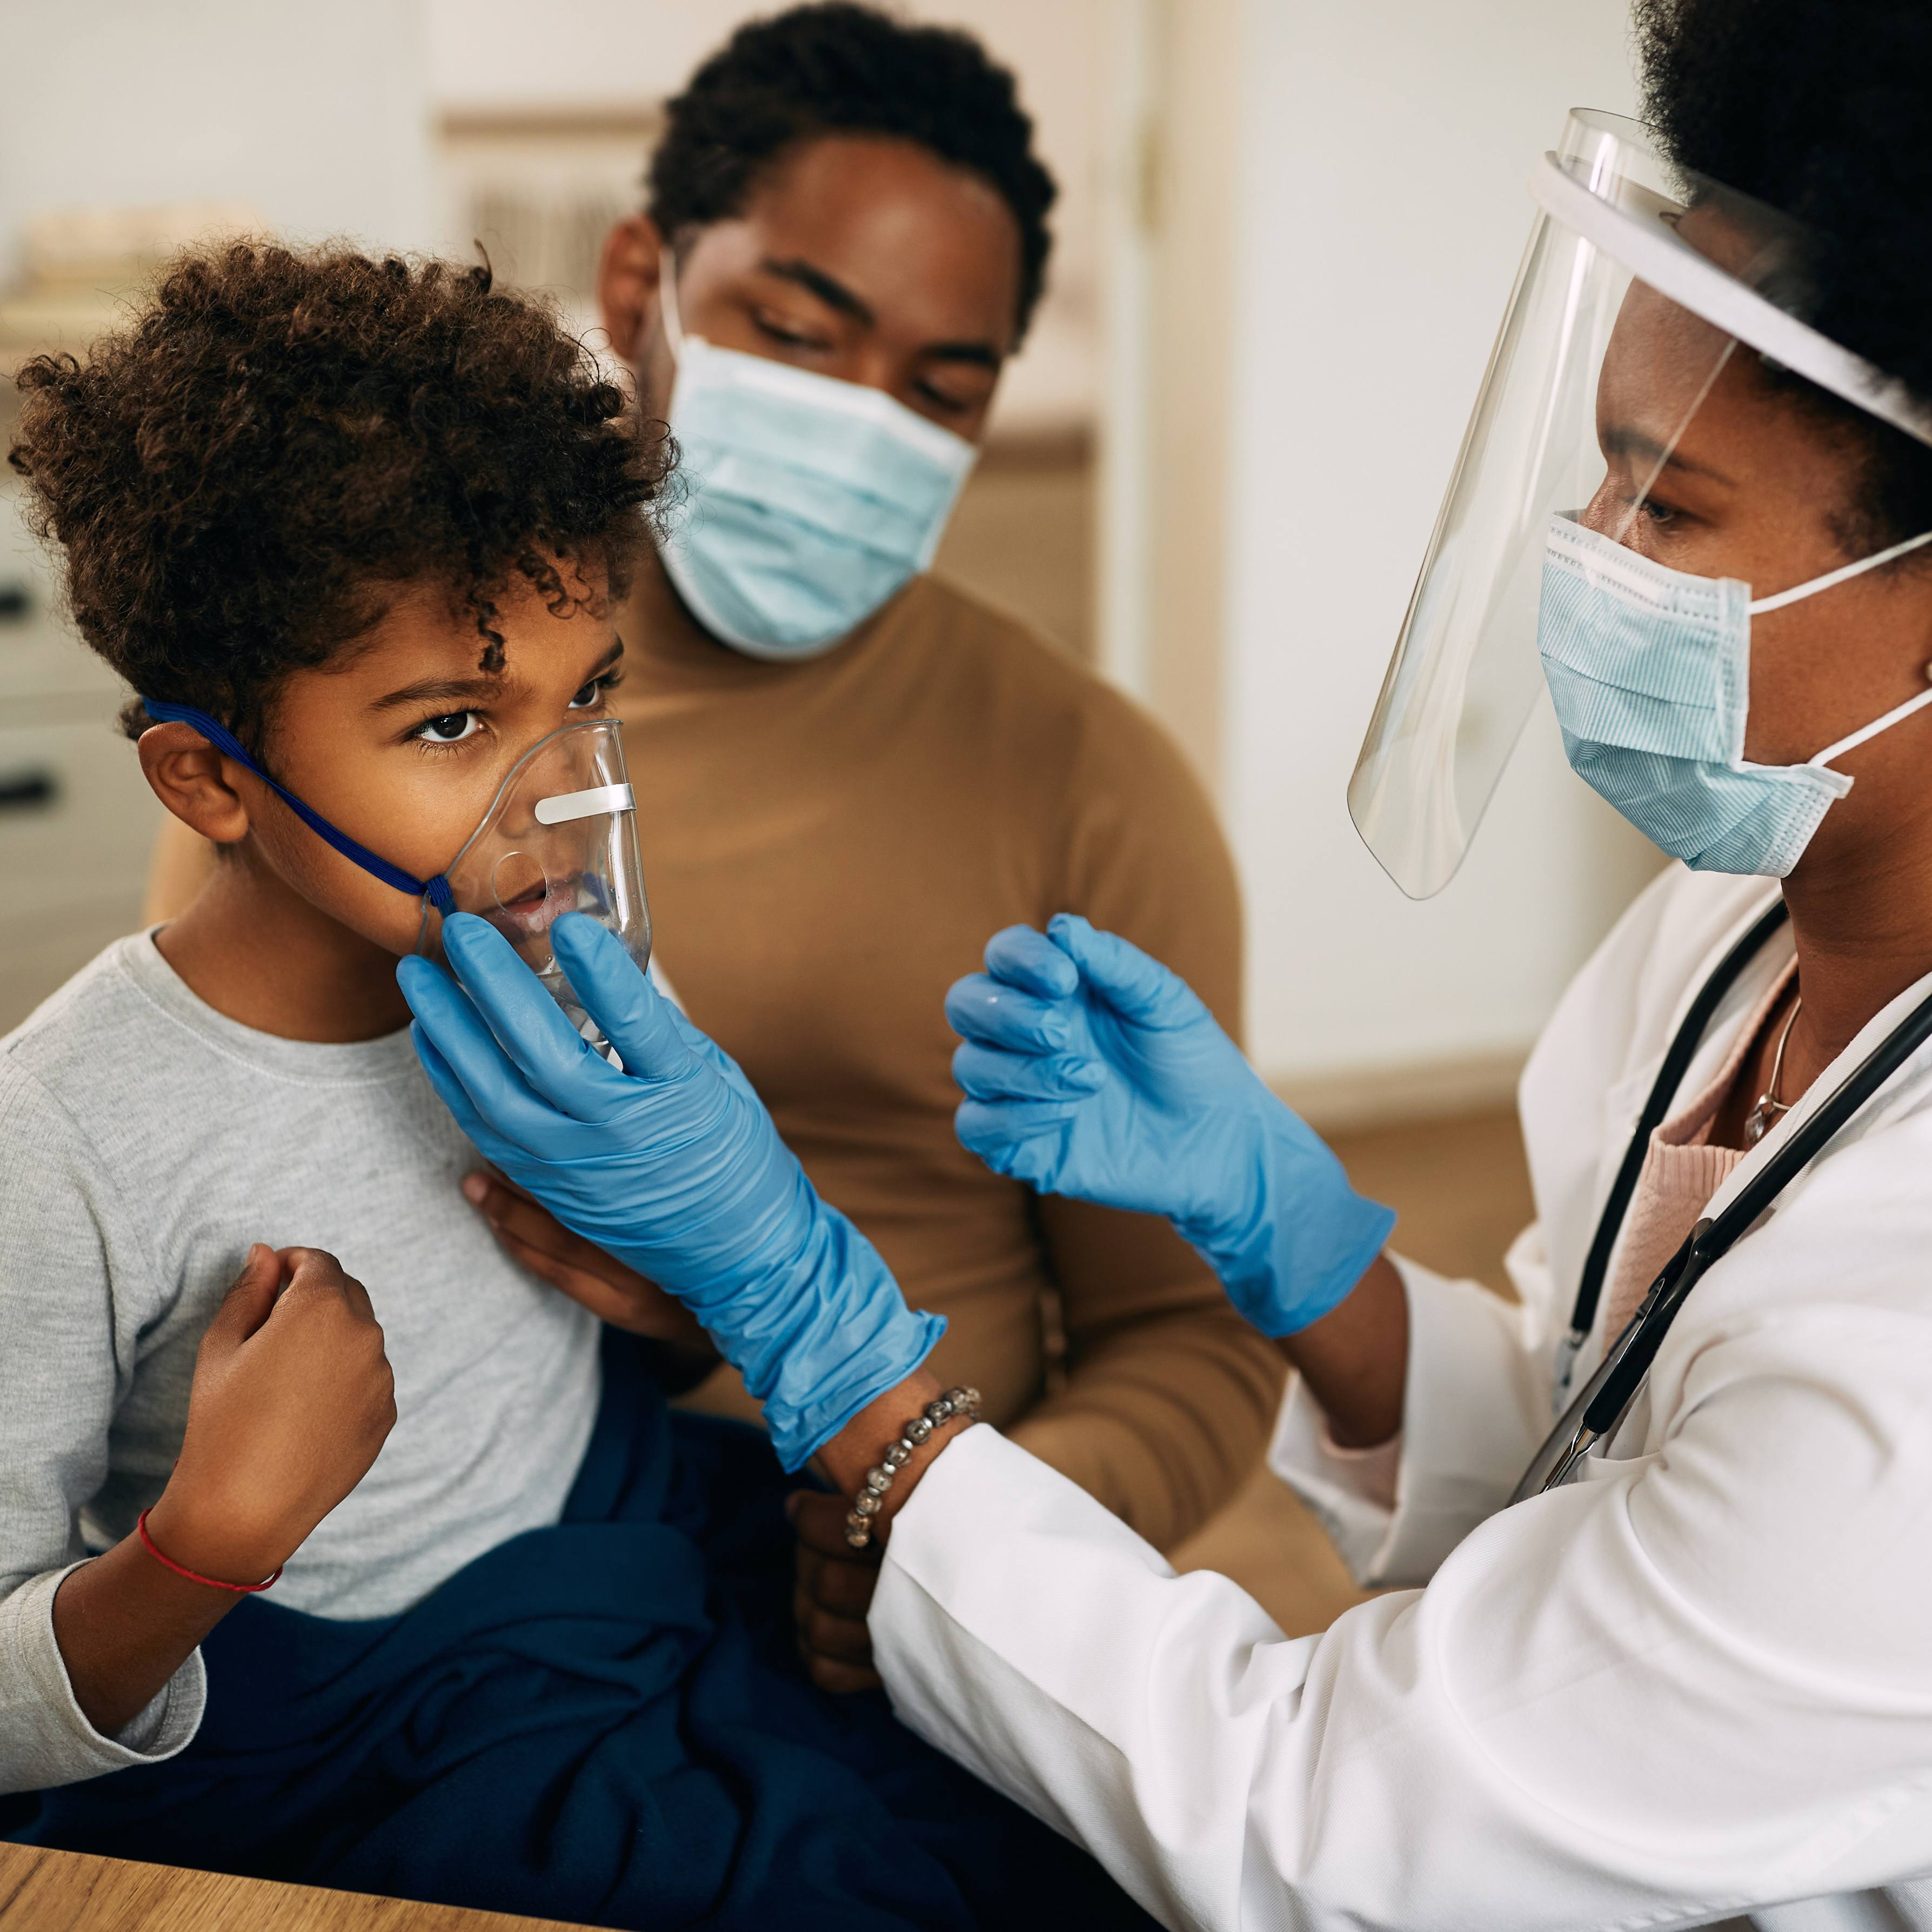 a young Black boy with asthma in a doctor's exam room with his mom and the physician helping him breathe, all wearing masks